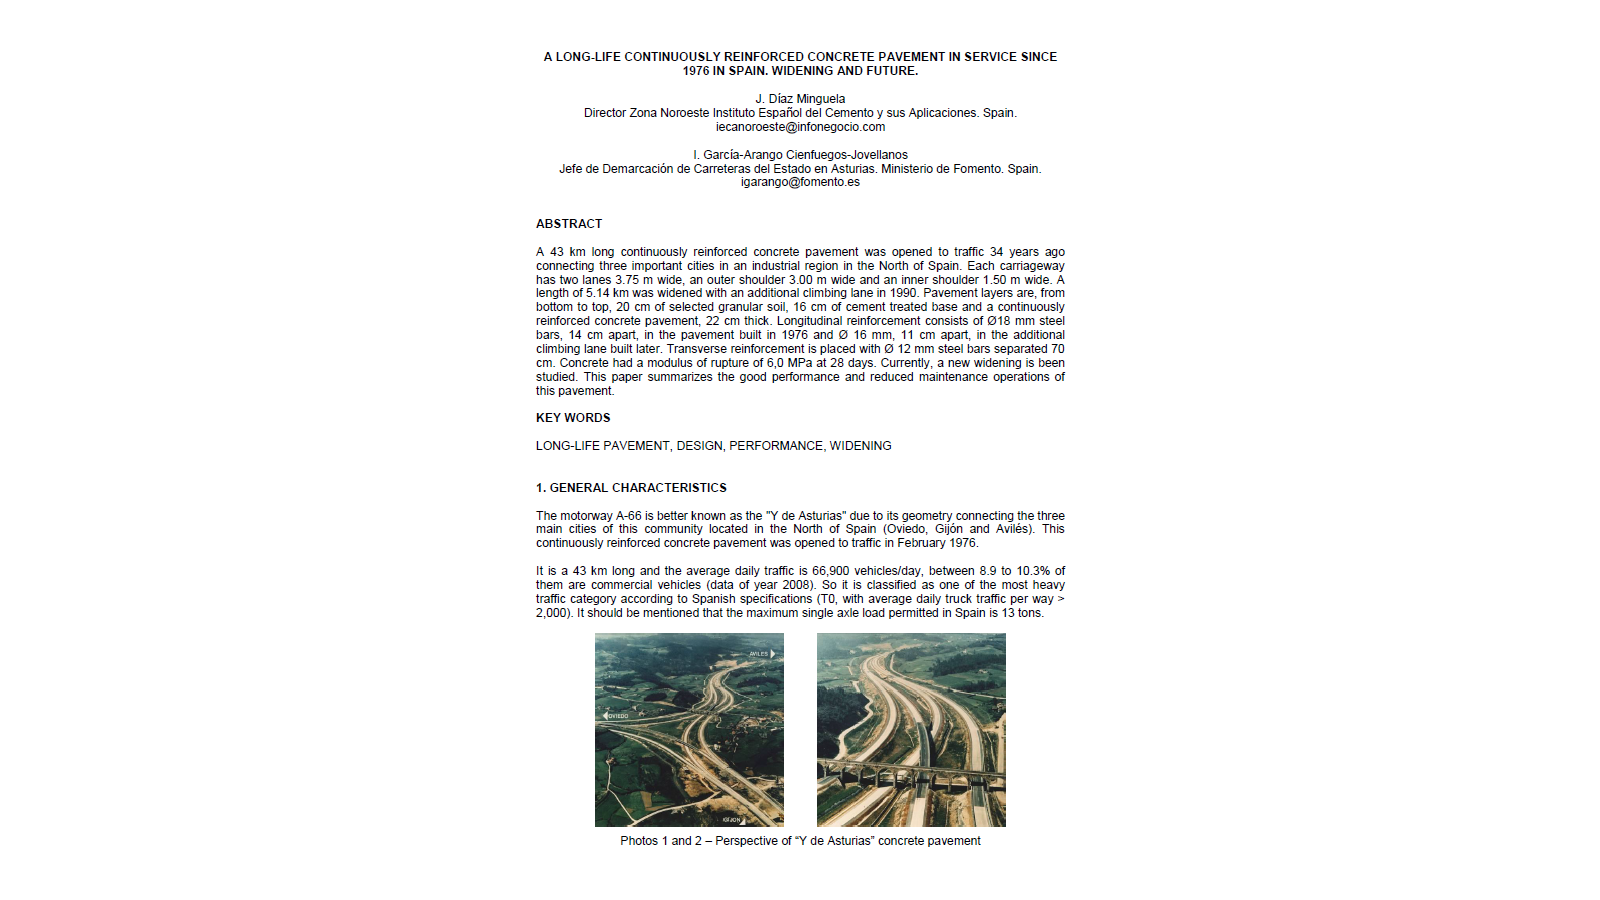 A Long-Life Continuously Reinforced Concrete Pavement in Service since 1976 in Spain.  Widening and Future.